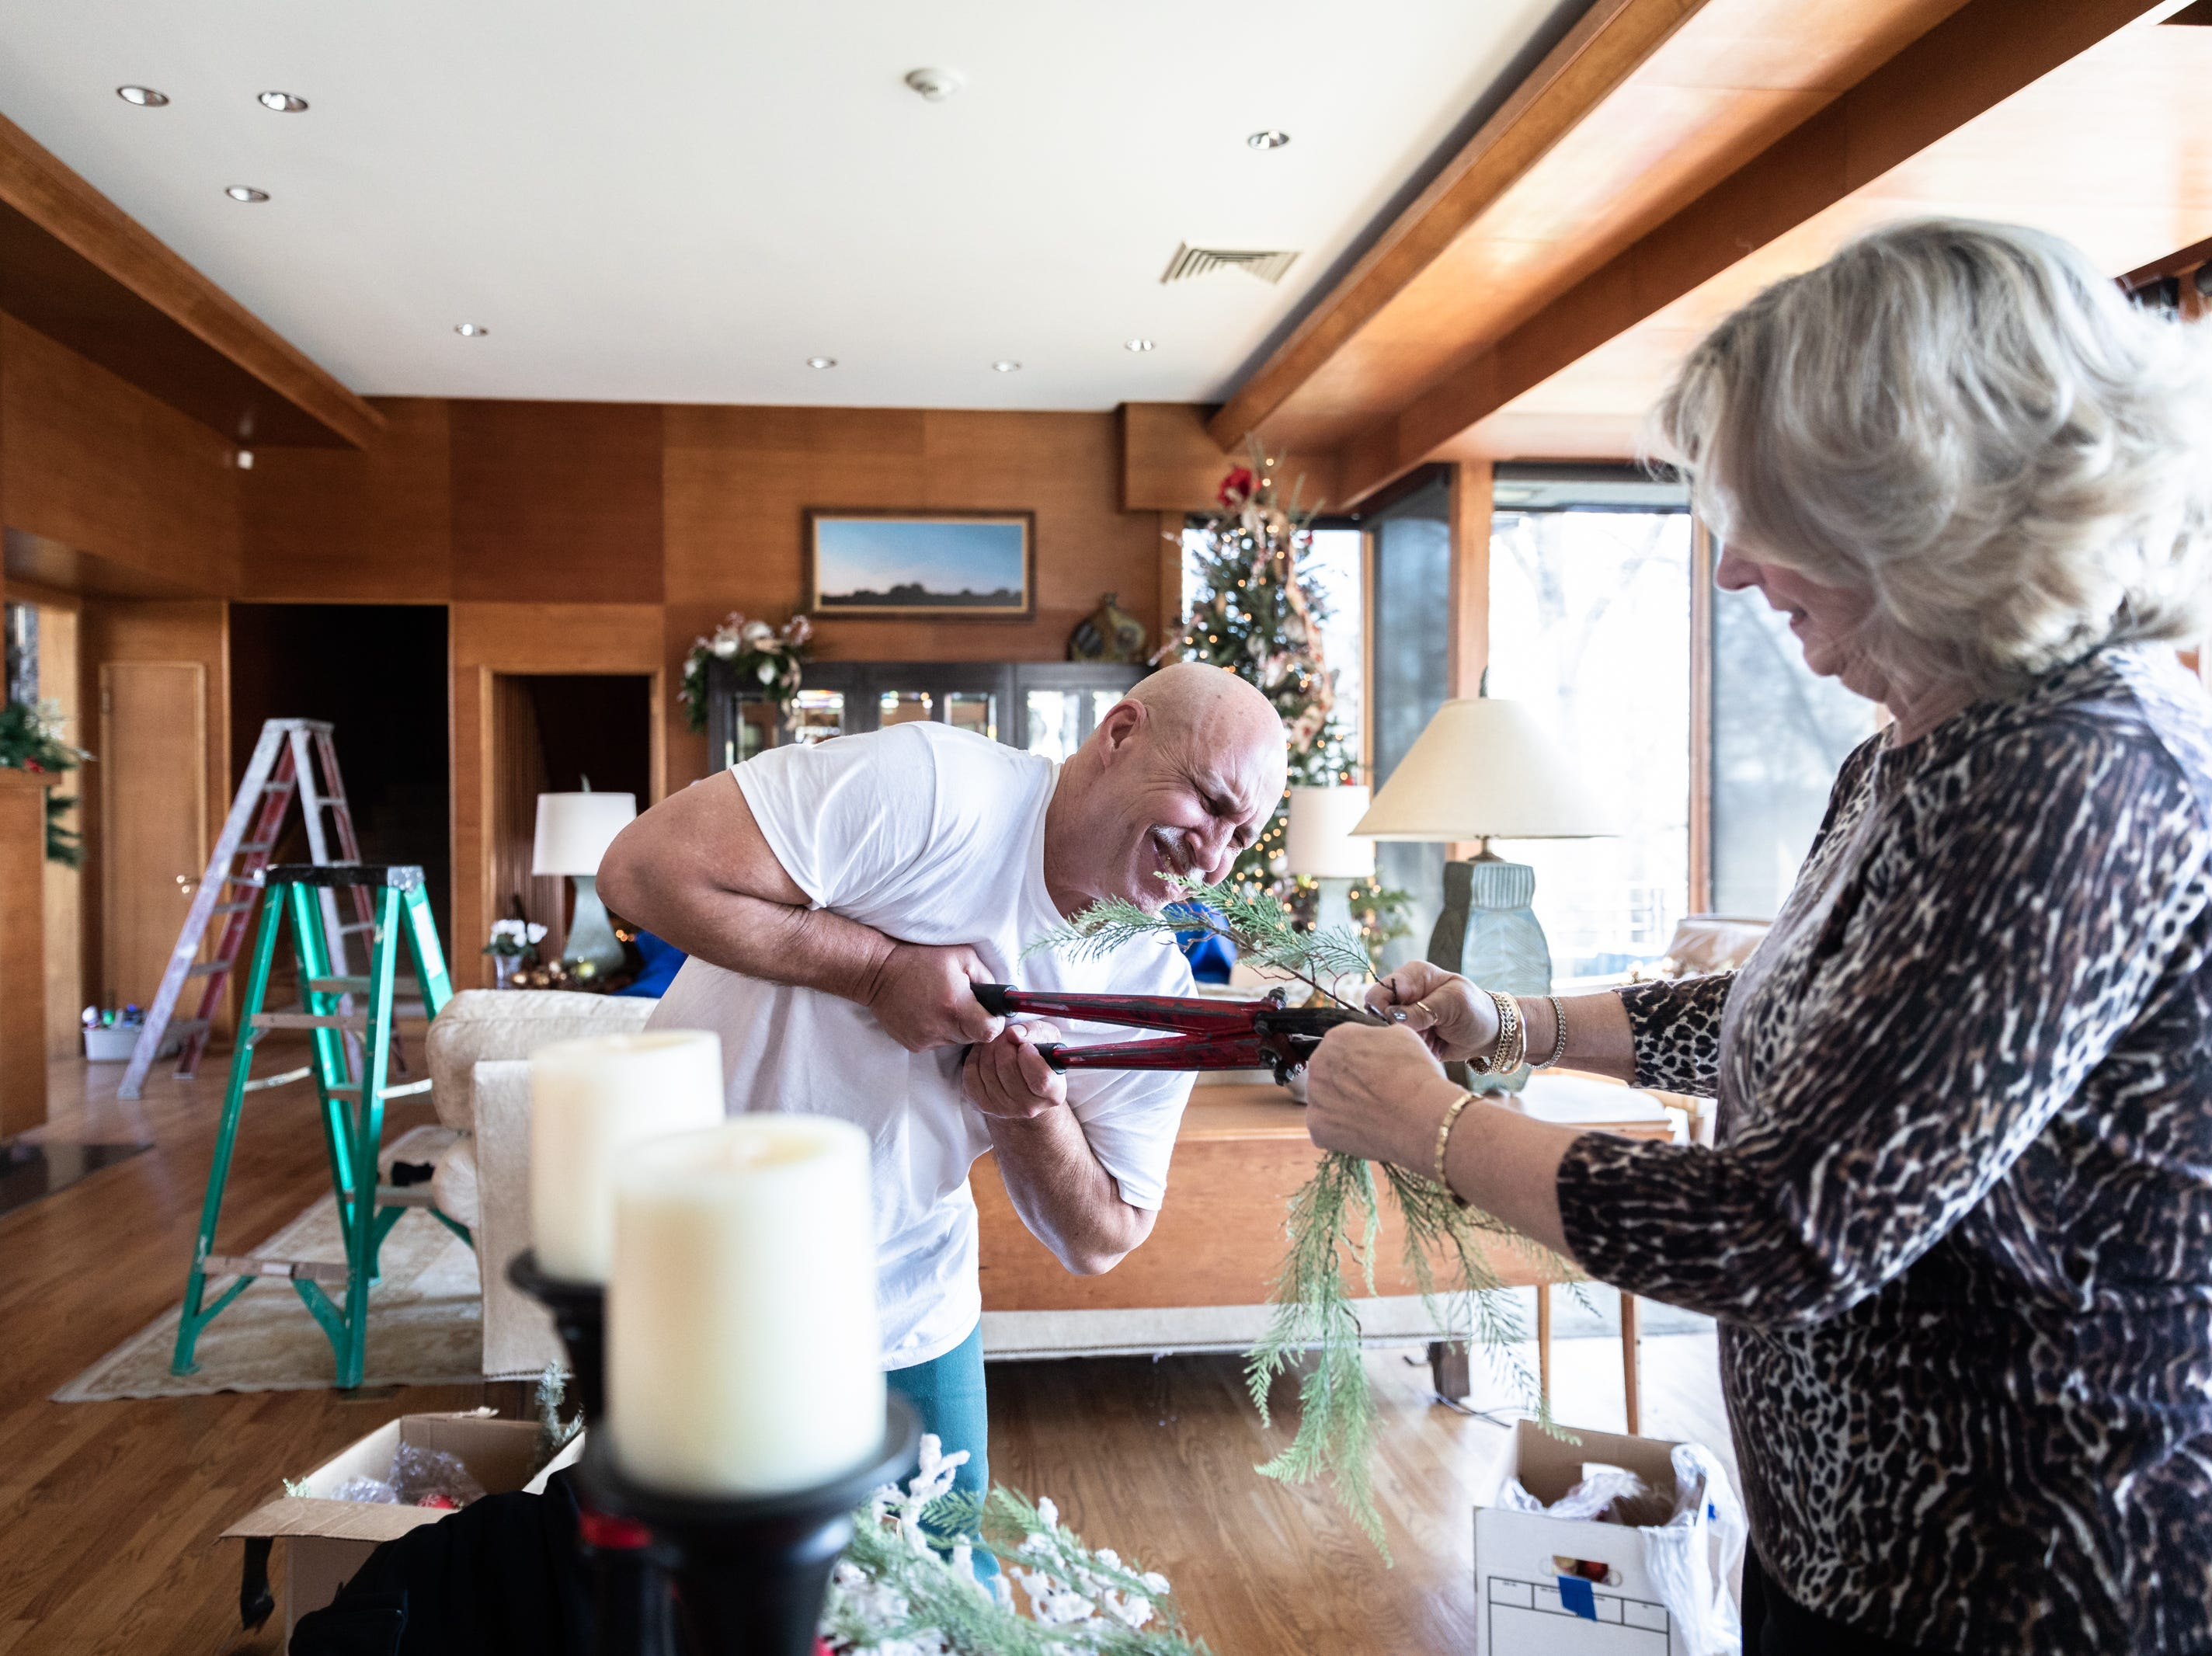 Tony Hartsell, of Asheville helps trim a decorative branch with June Ray, of Waynesville, a member of the Governor's Western Residence Board of Directors as they decorate the residence on Patton Mountain Road in Asheville, Nov. 29, 2018.